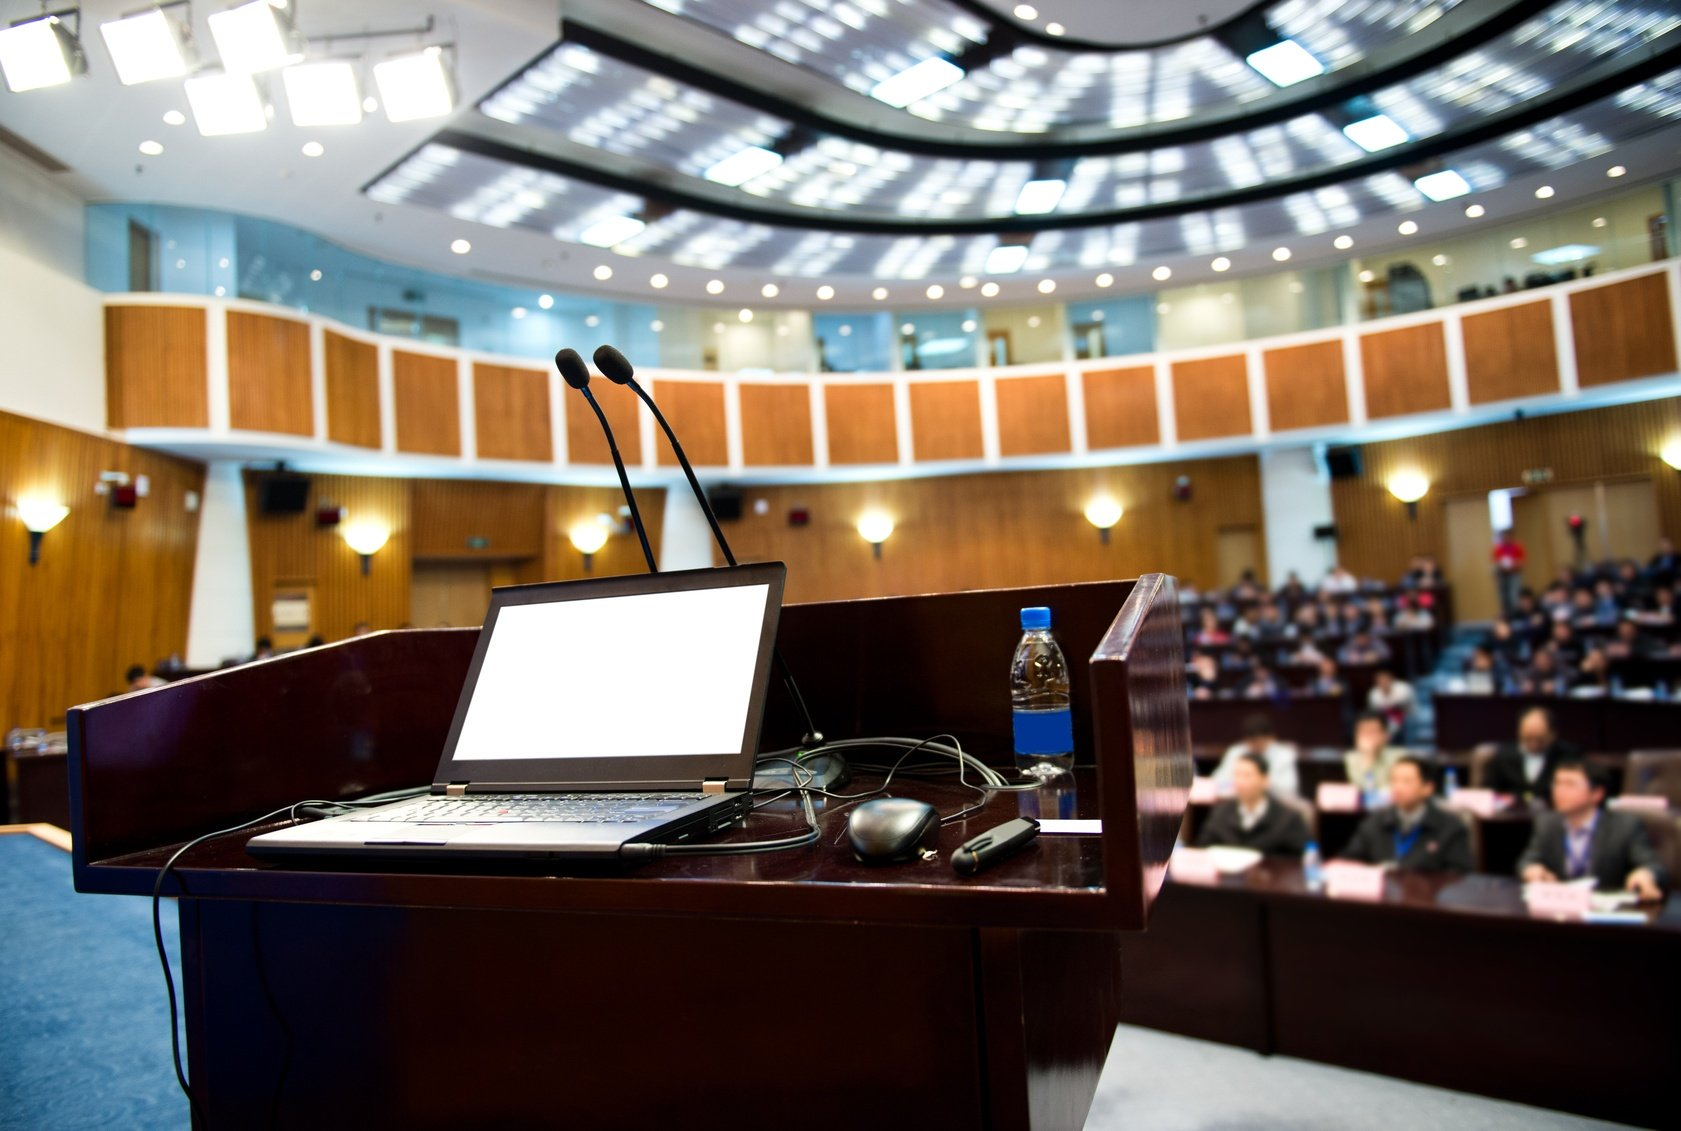 Public Speaking Tips for High School and College Students